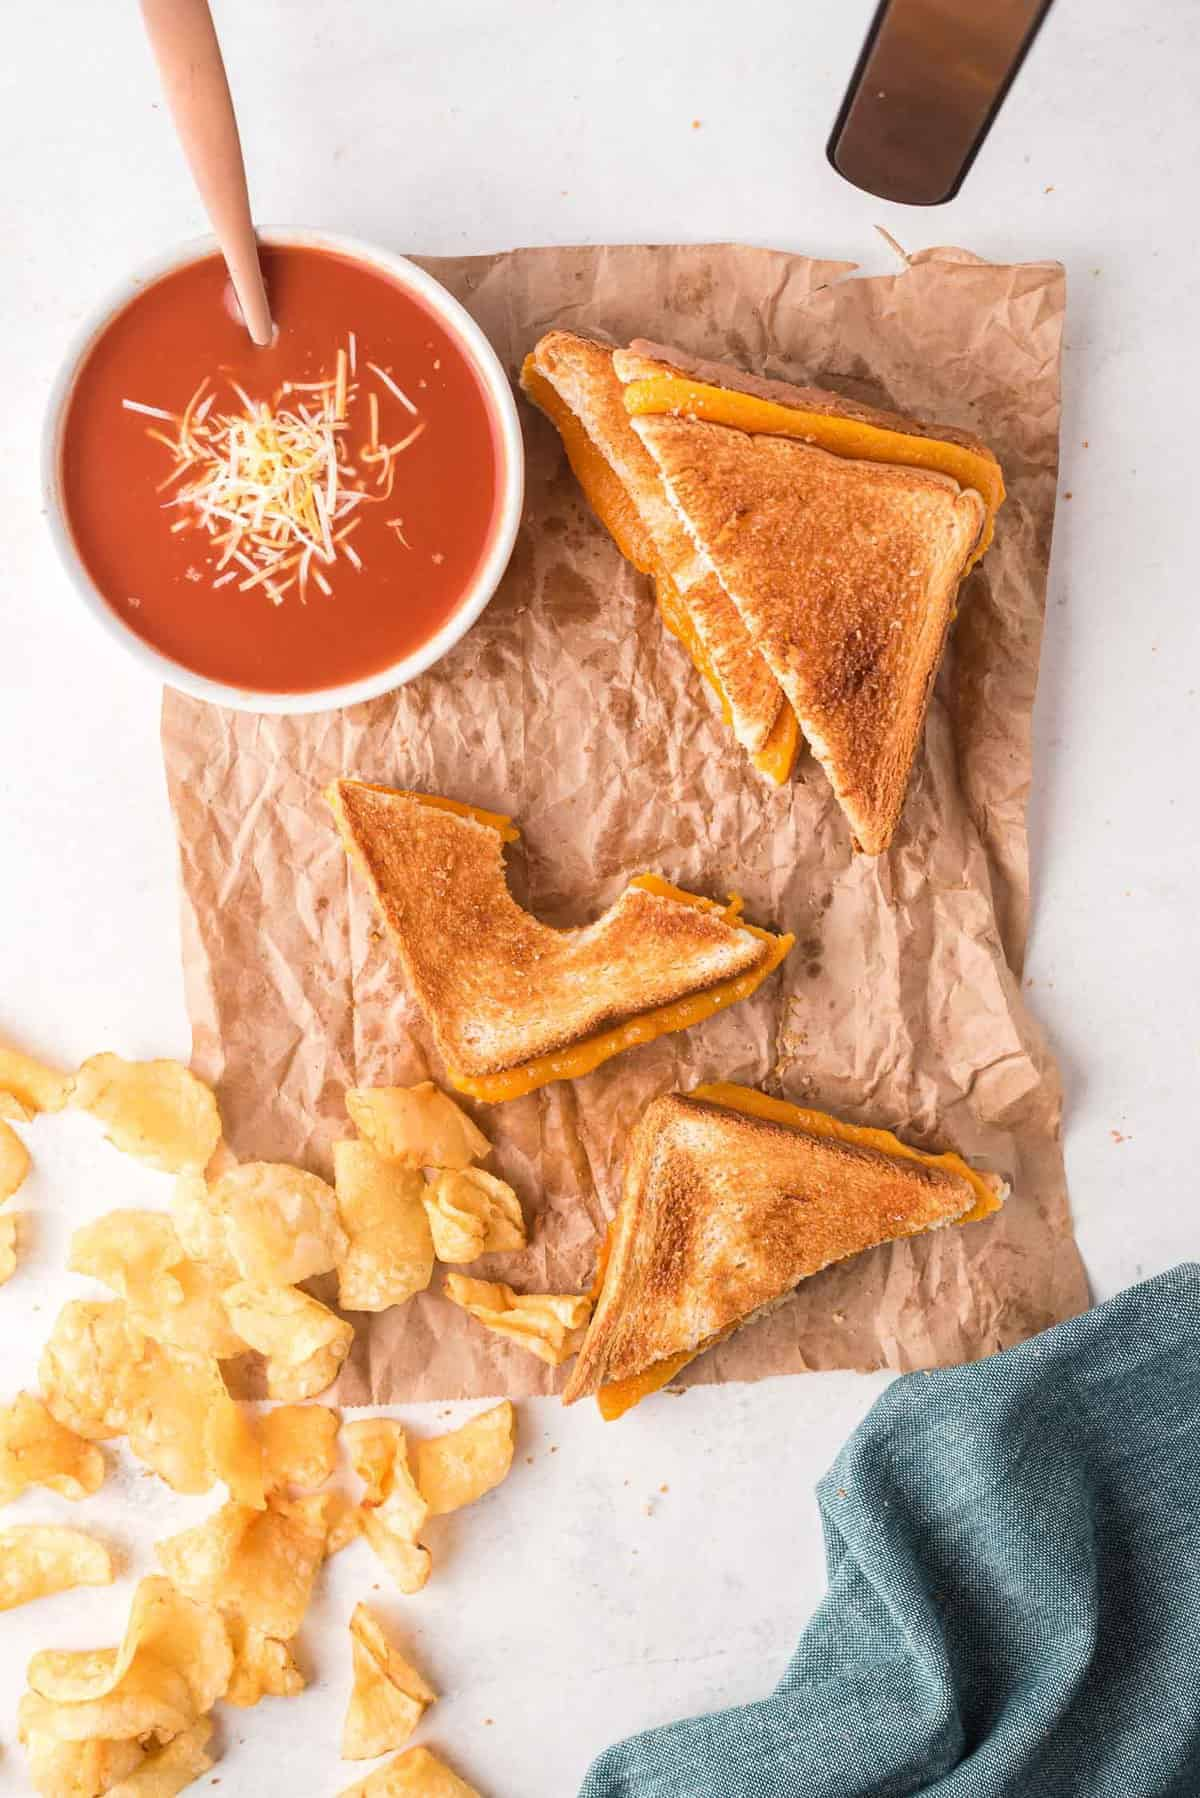 Toasted sandwich with cheese, alongside potato chips and tomato soup.